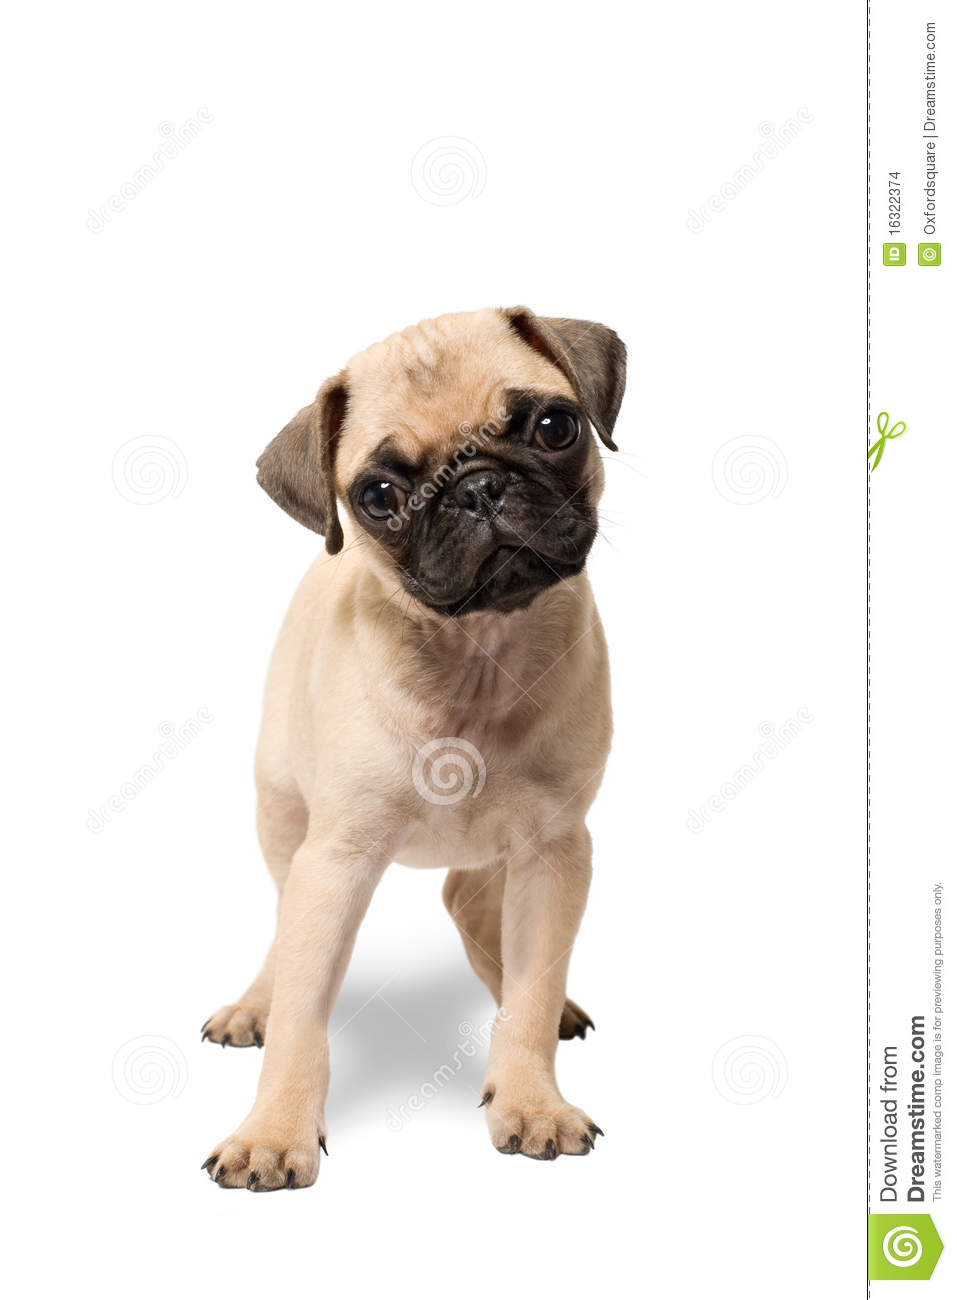 Pug Puppy Dog Standing Stock Images - Image: 16322374